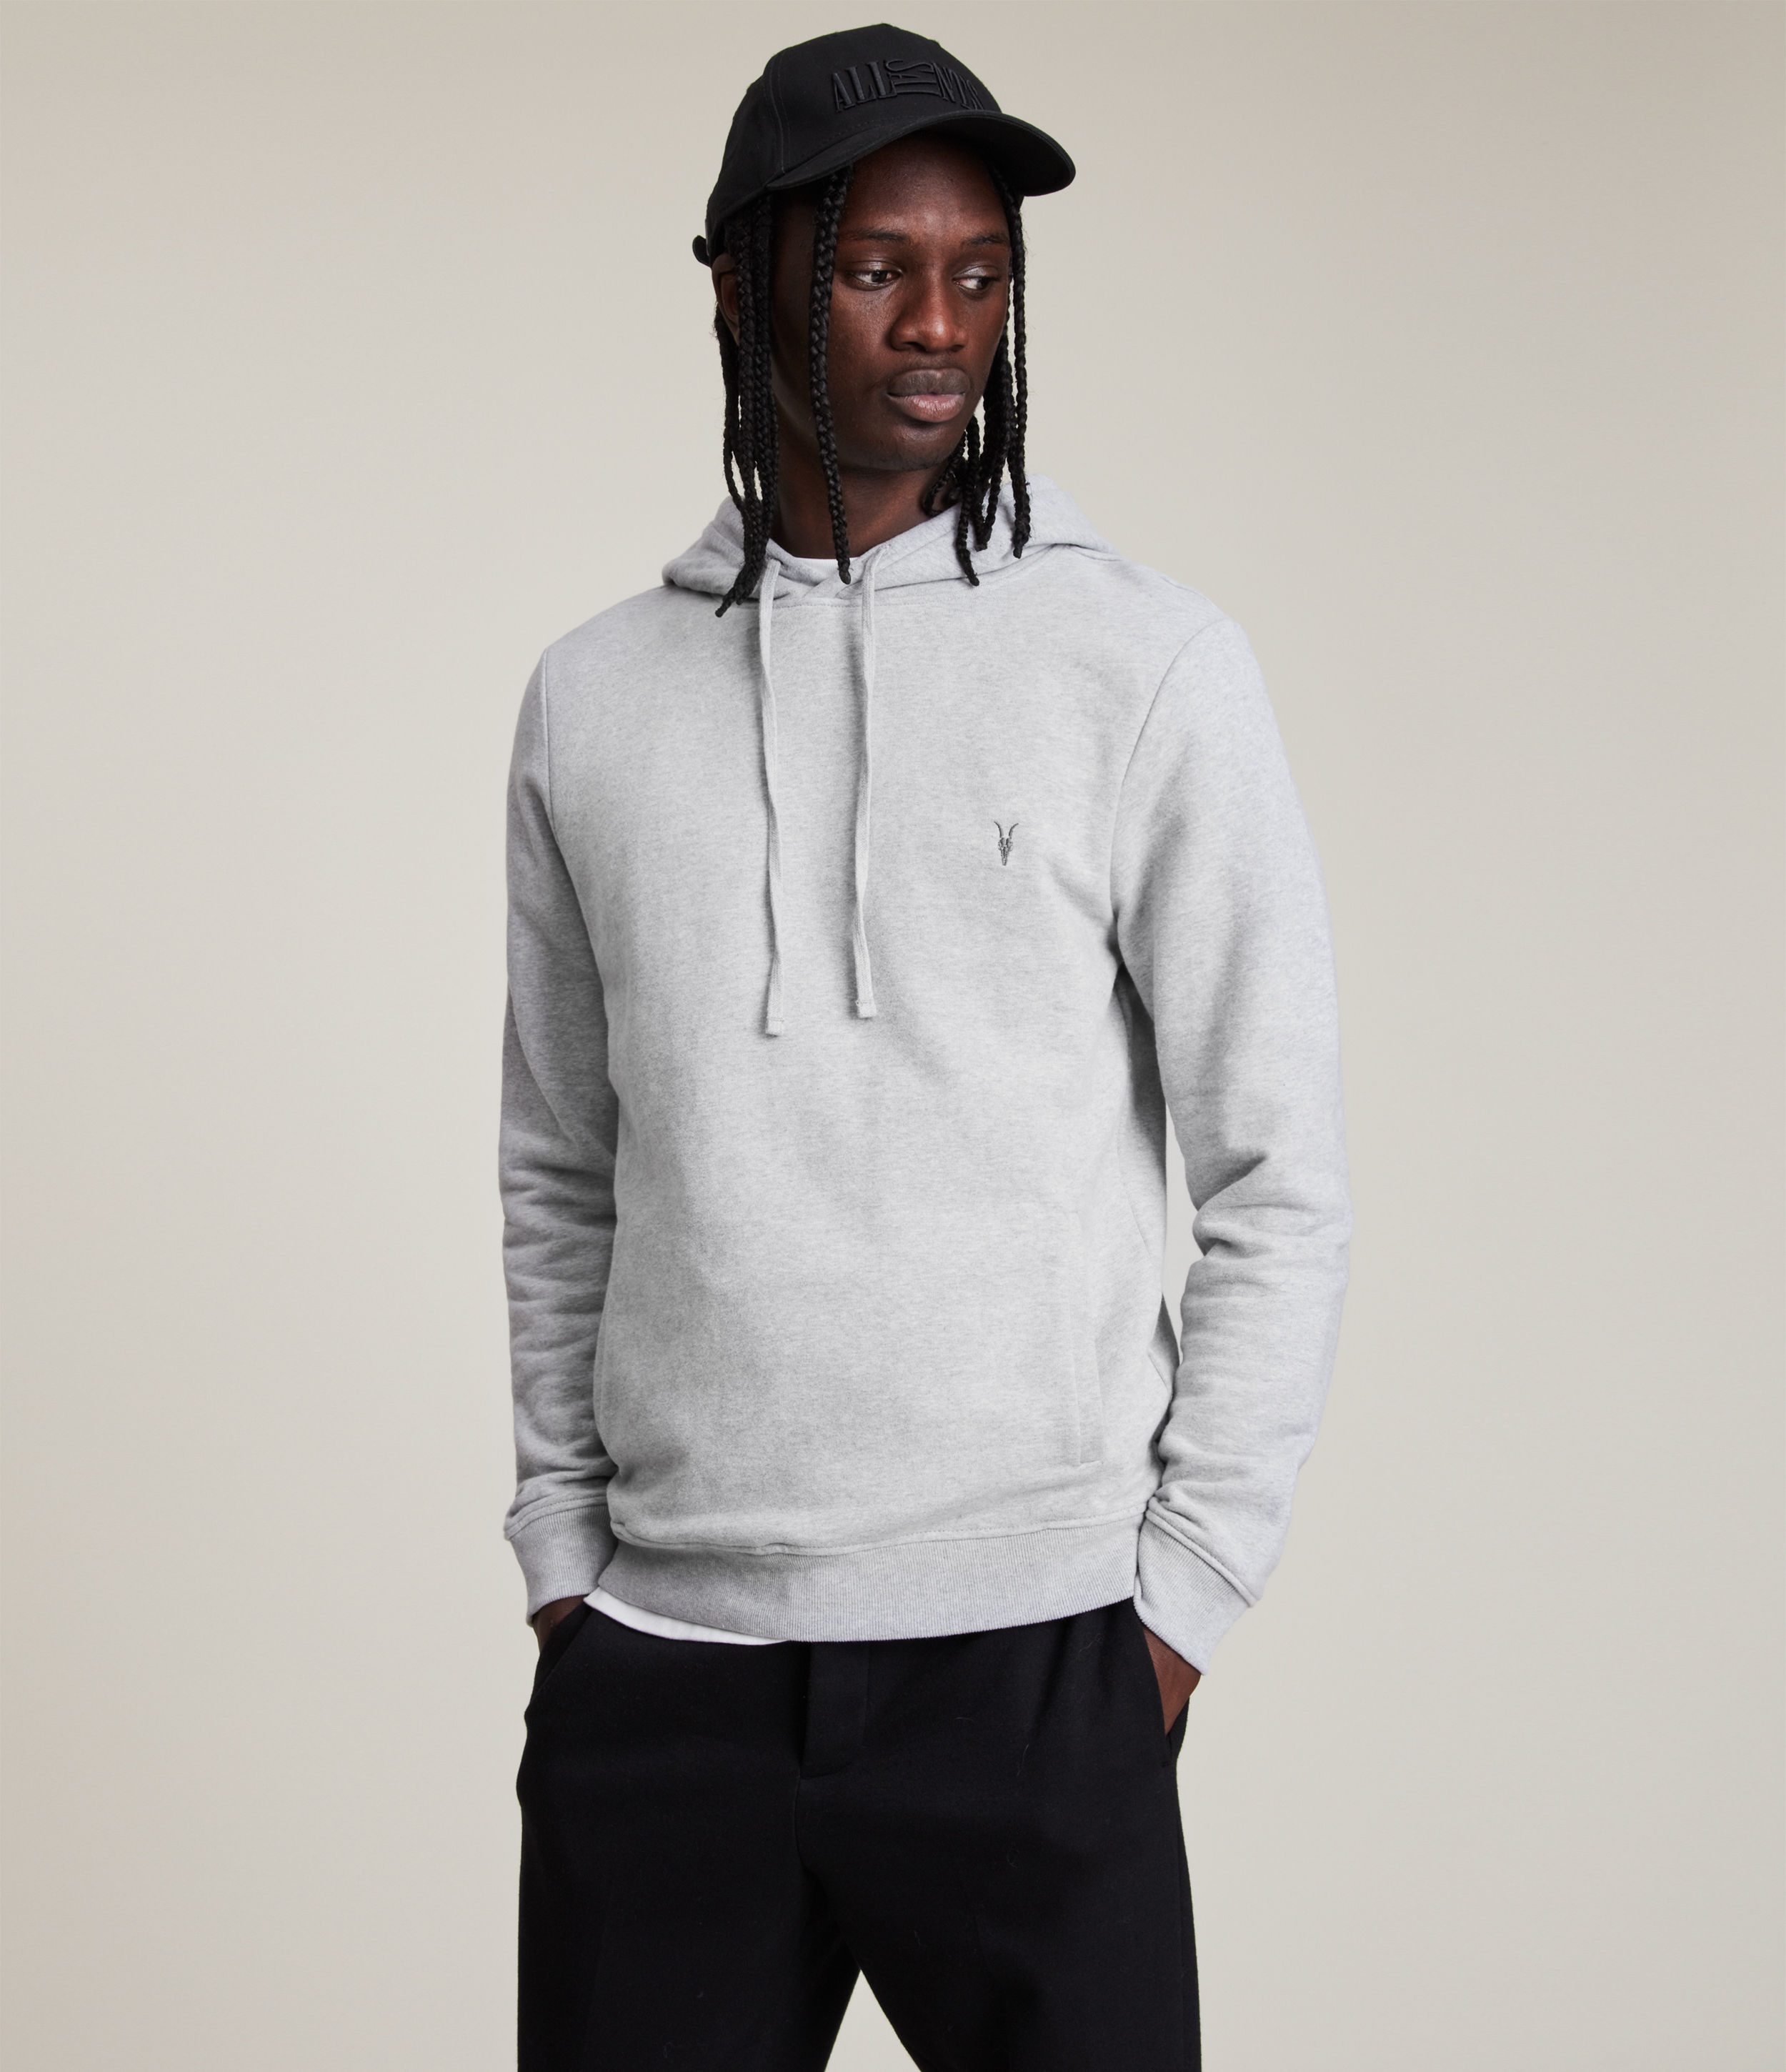 AllSaints Men's Cotton Slim Fit Raven Pullover Hoodie, Grey, Size: S